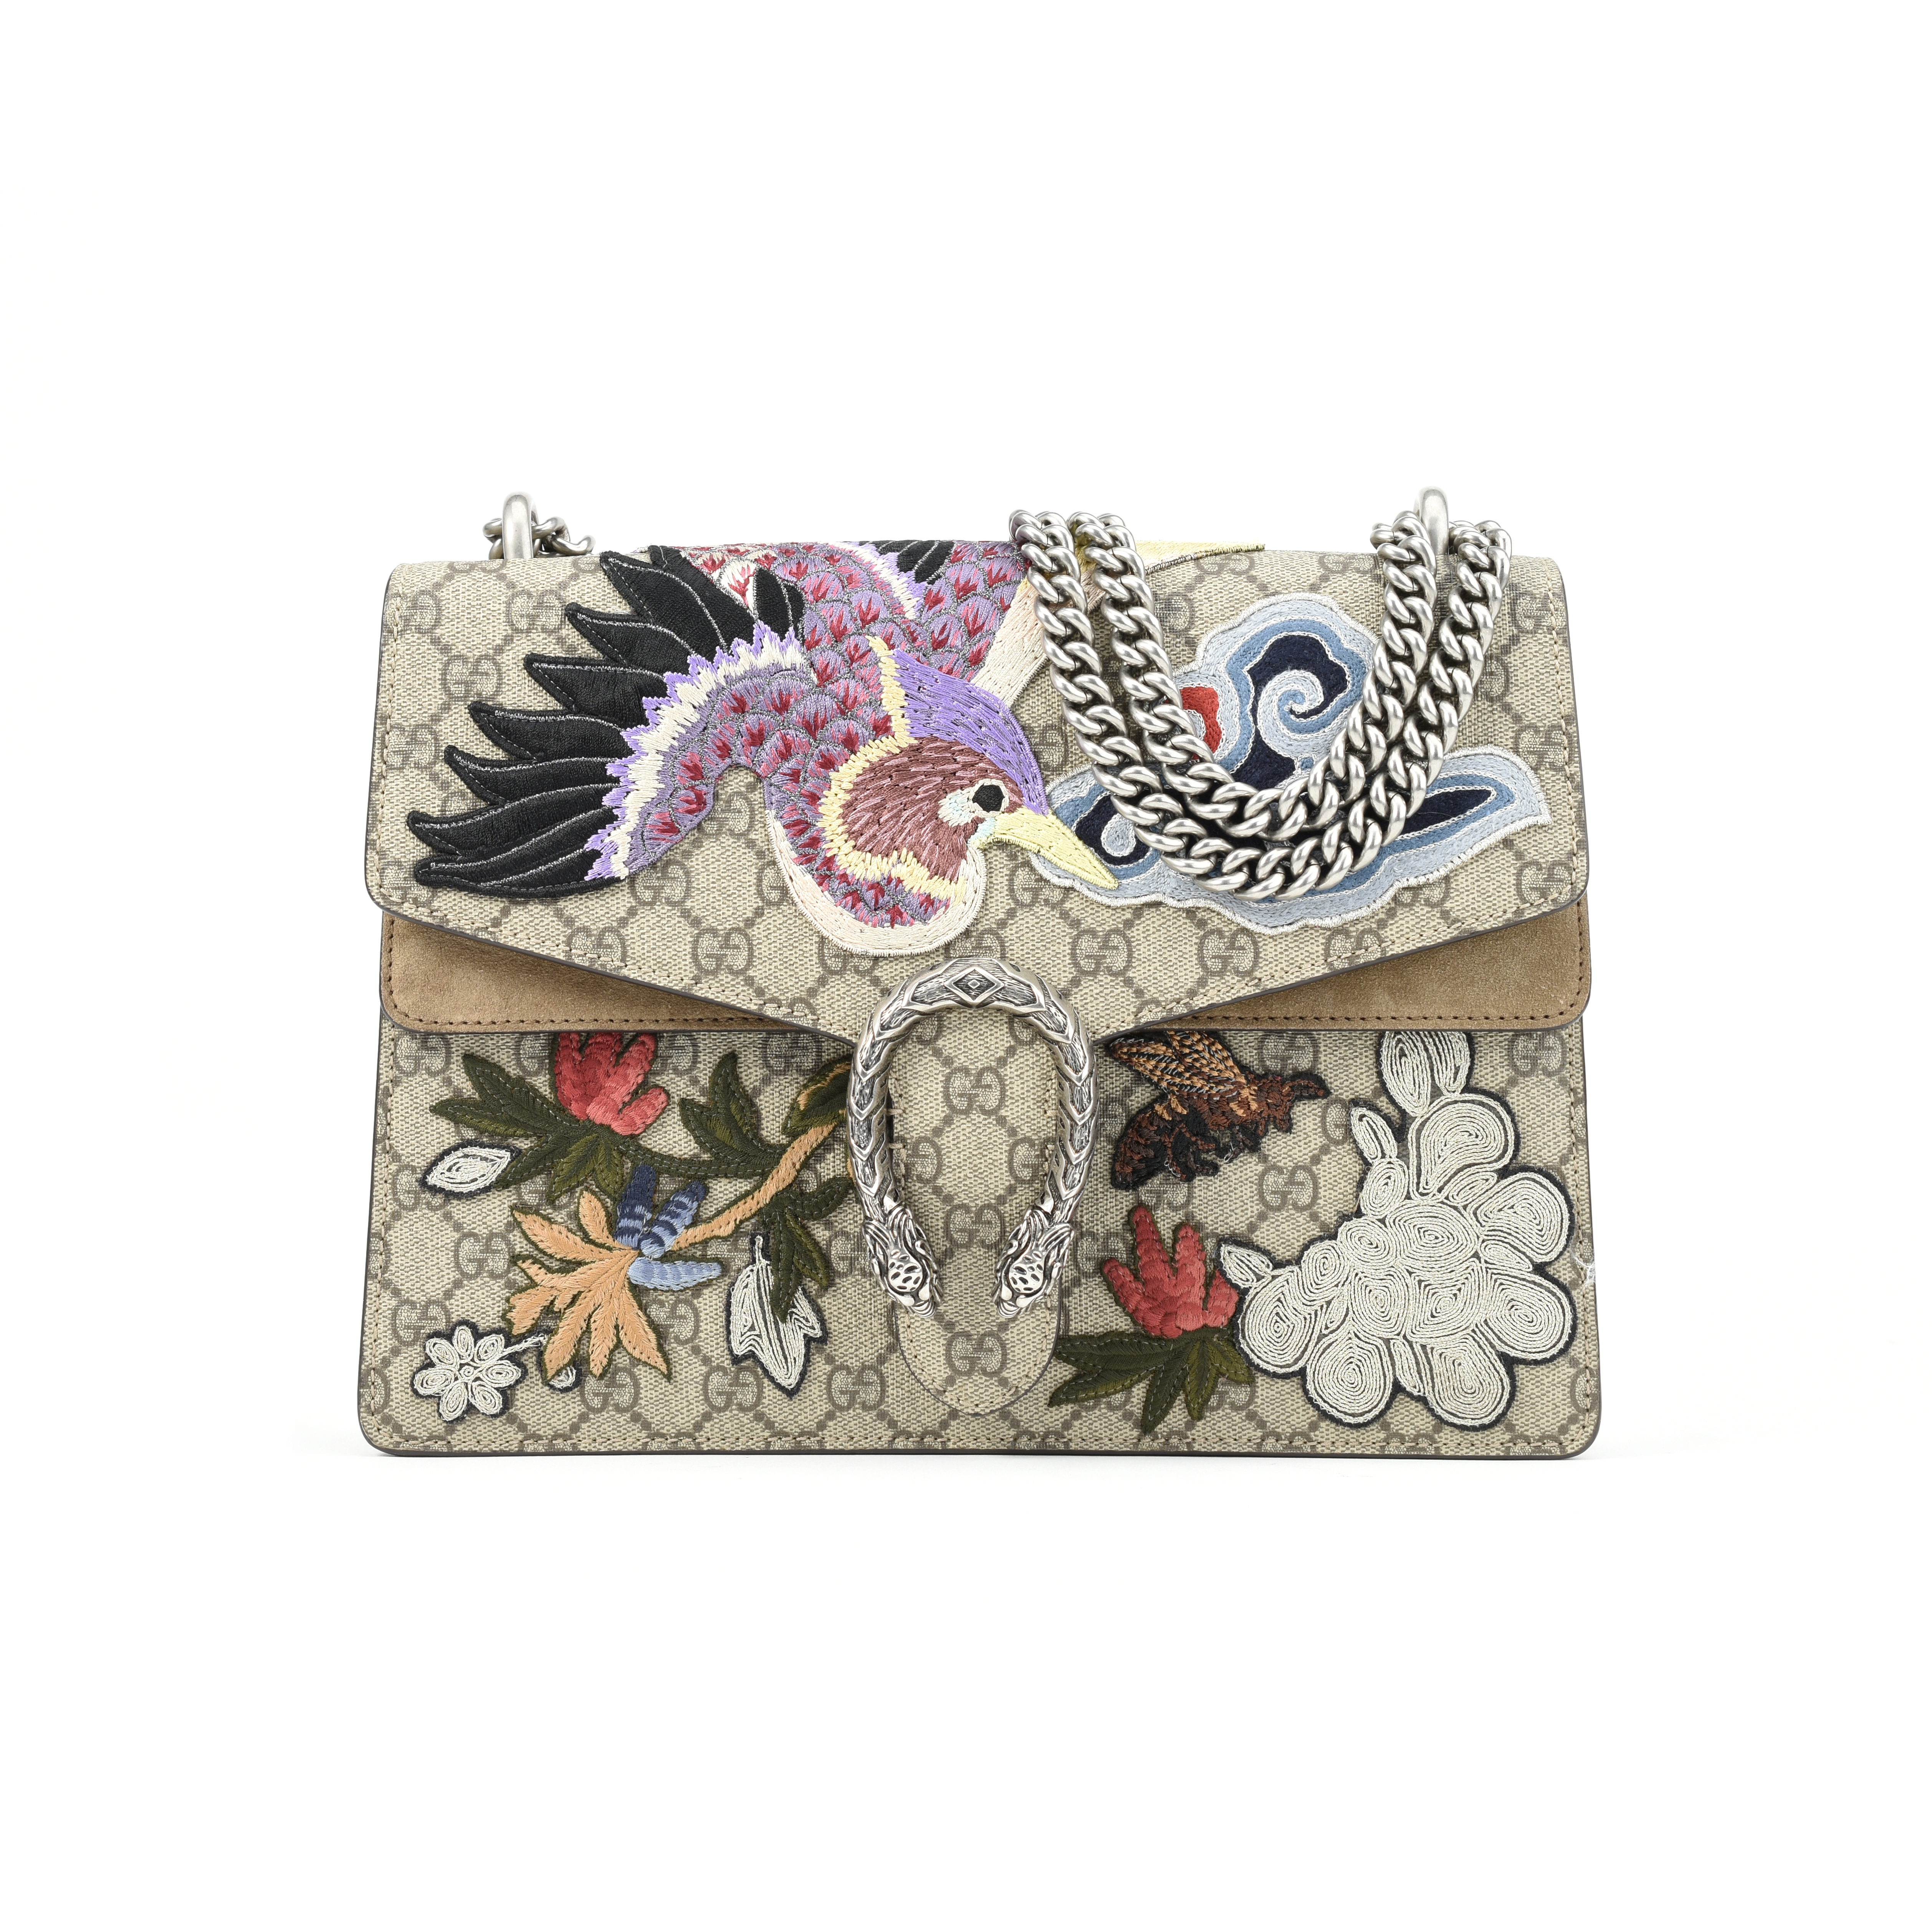 936c85840578 Authentic Second Hand Gucci Dionysus Bird Embroidered Shoulder Bag  (PSS-200-00991) | THE FIFTH COLLECTION